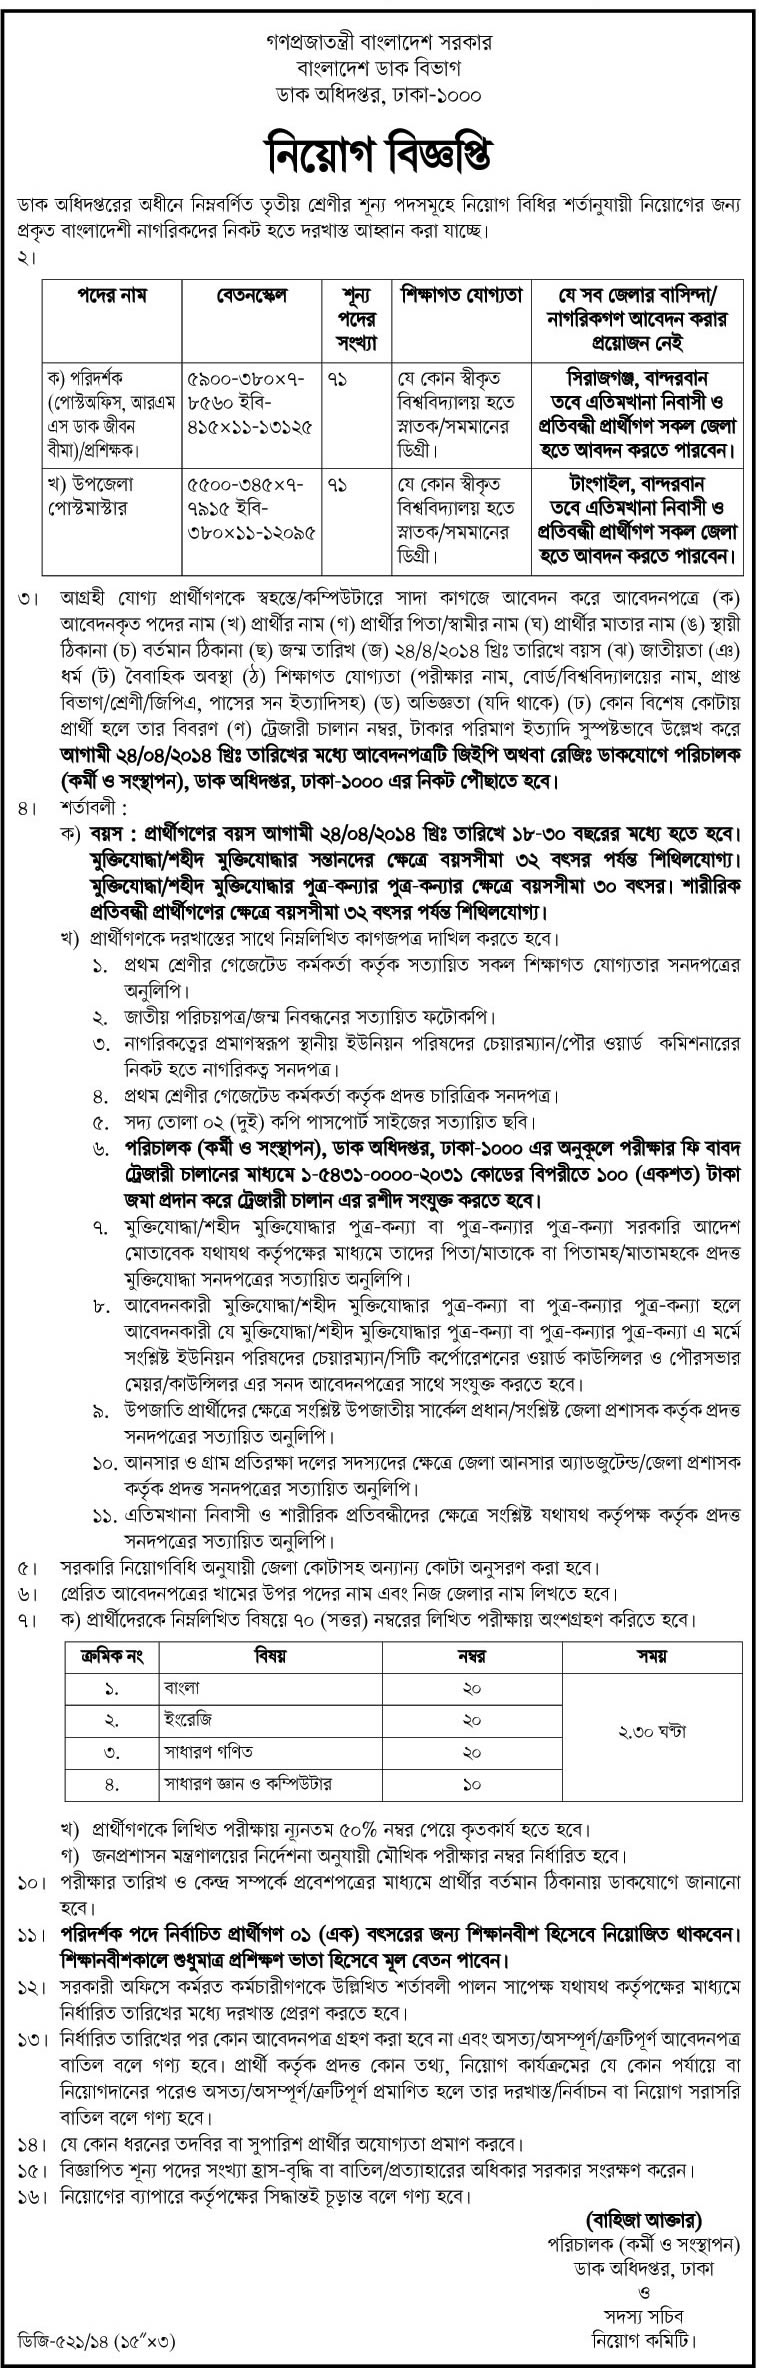 Inspector And Upazila Post Master Job Circular 2014